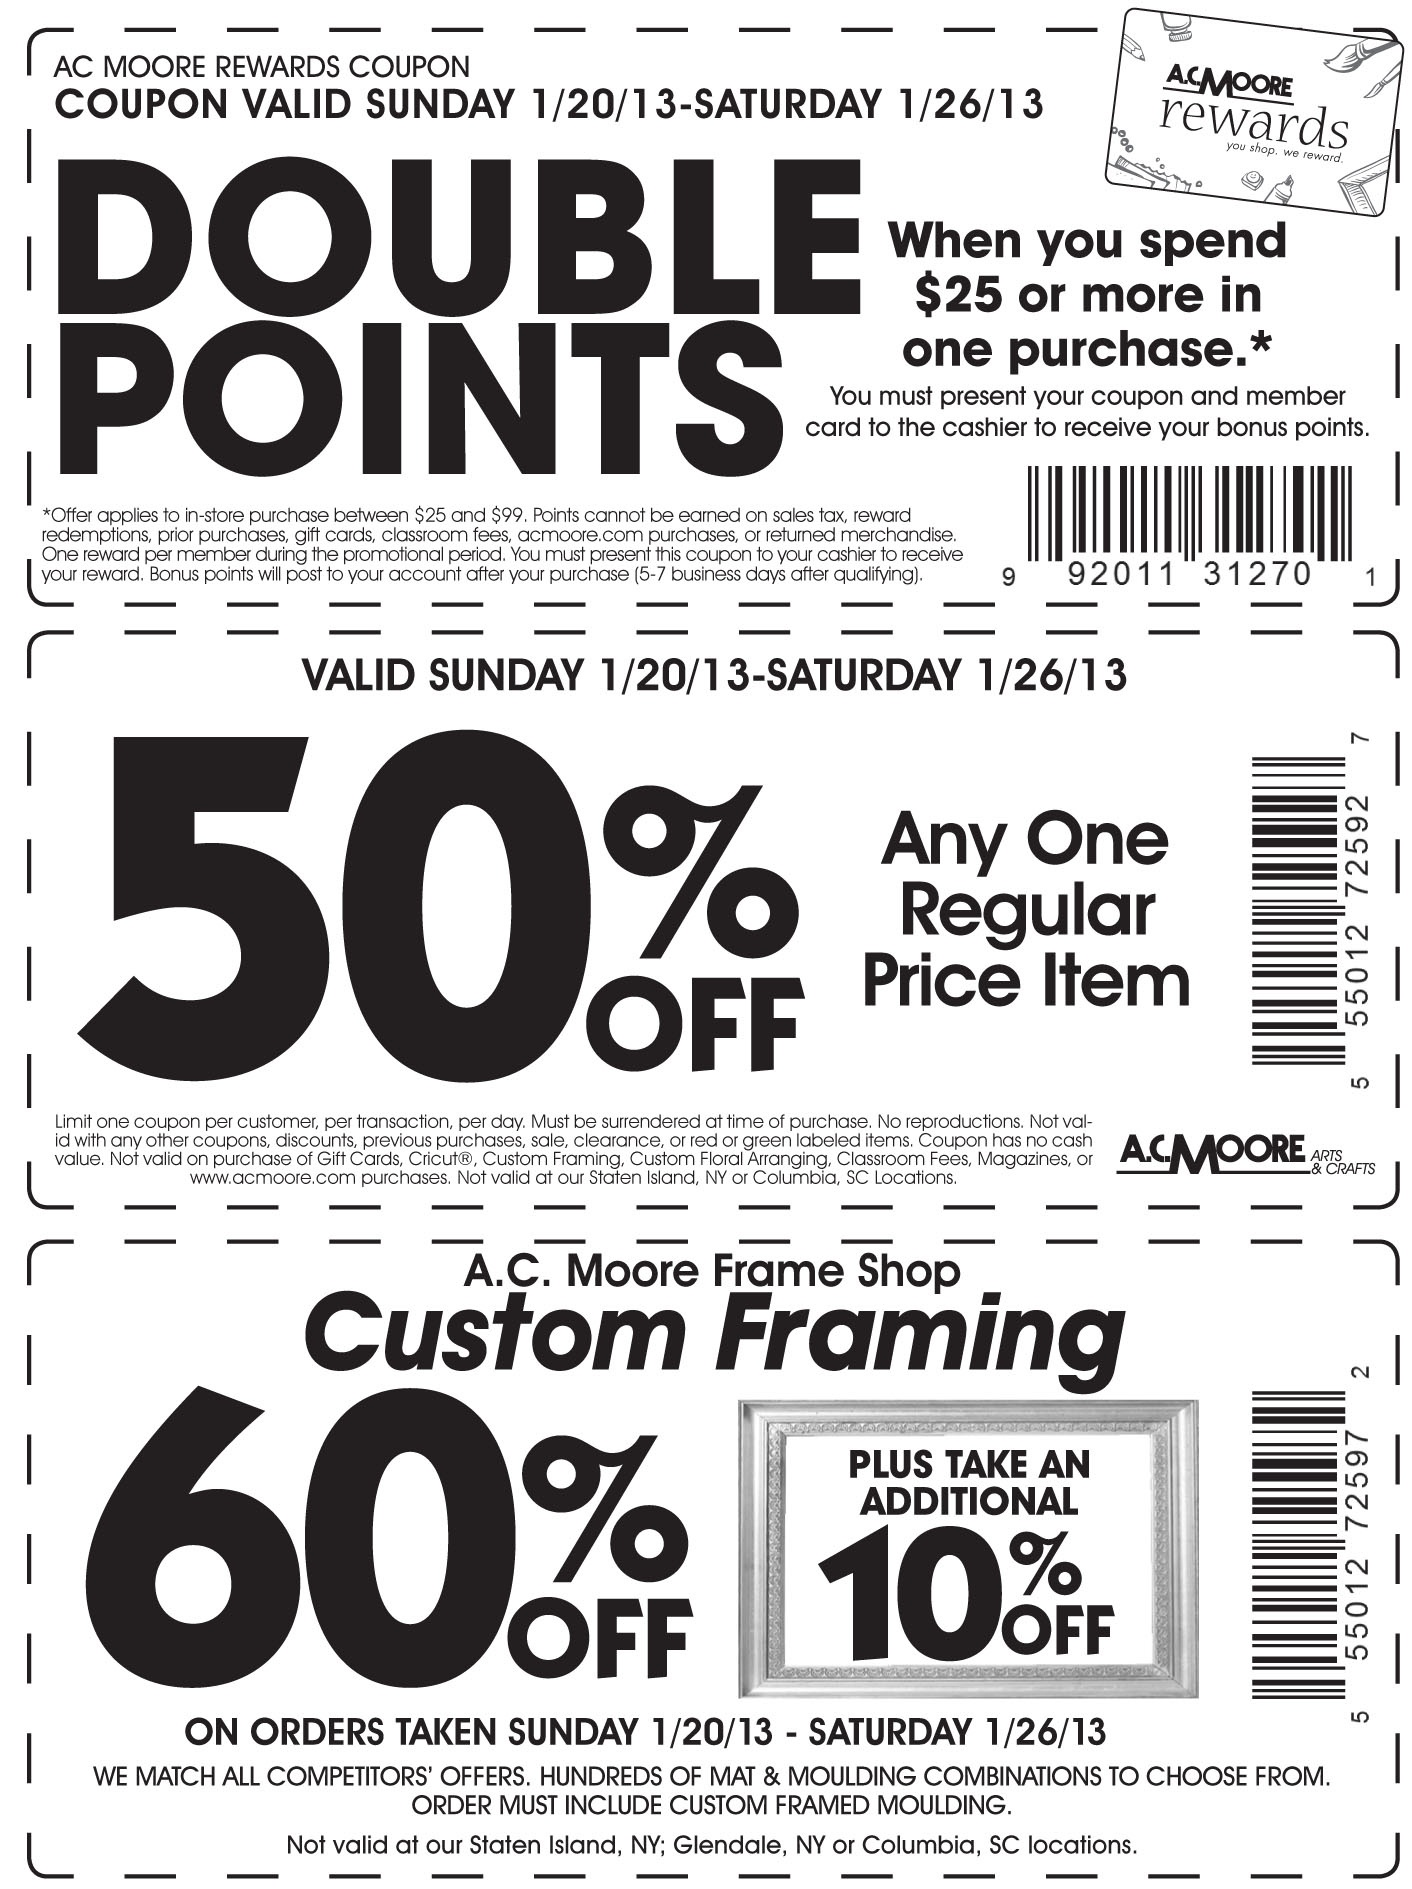 Ac Moore Coupons | Printable Coupons Online - Free Online Printable Ac Moore Coupons